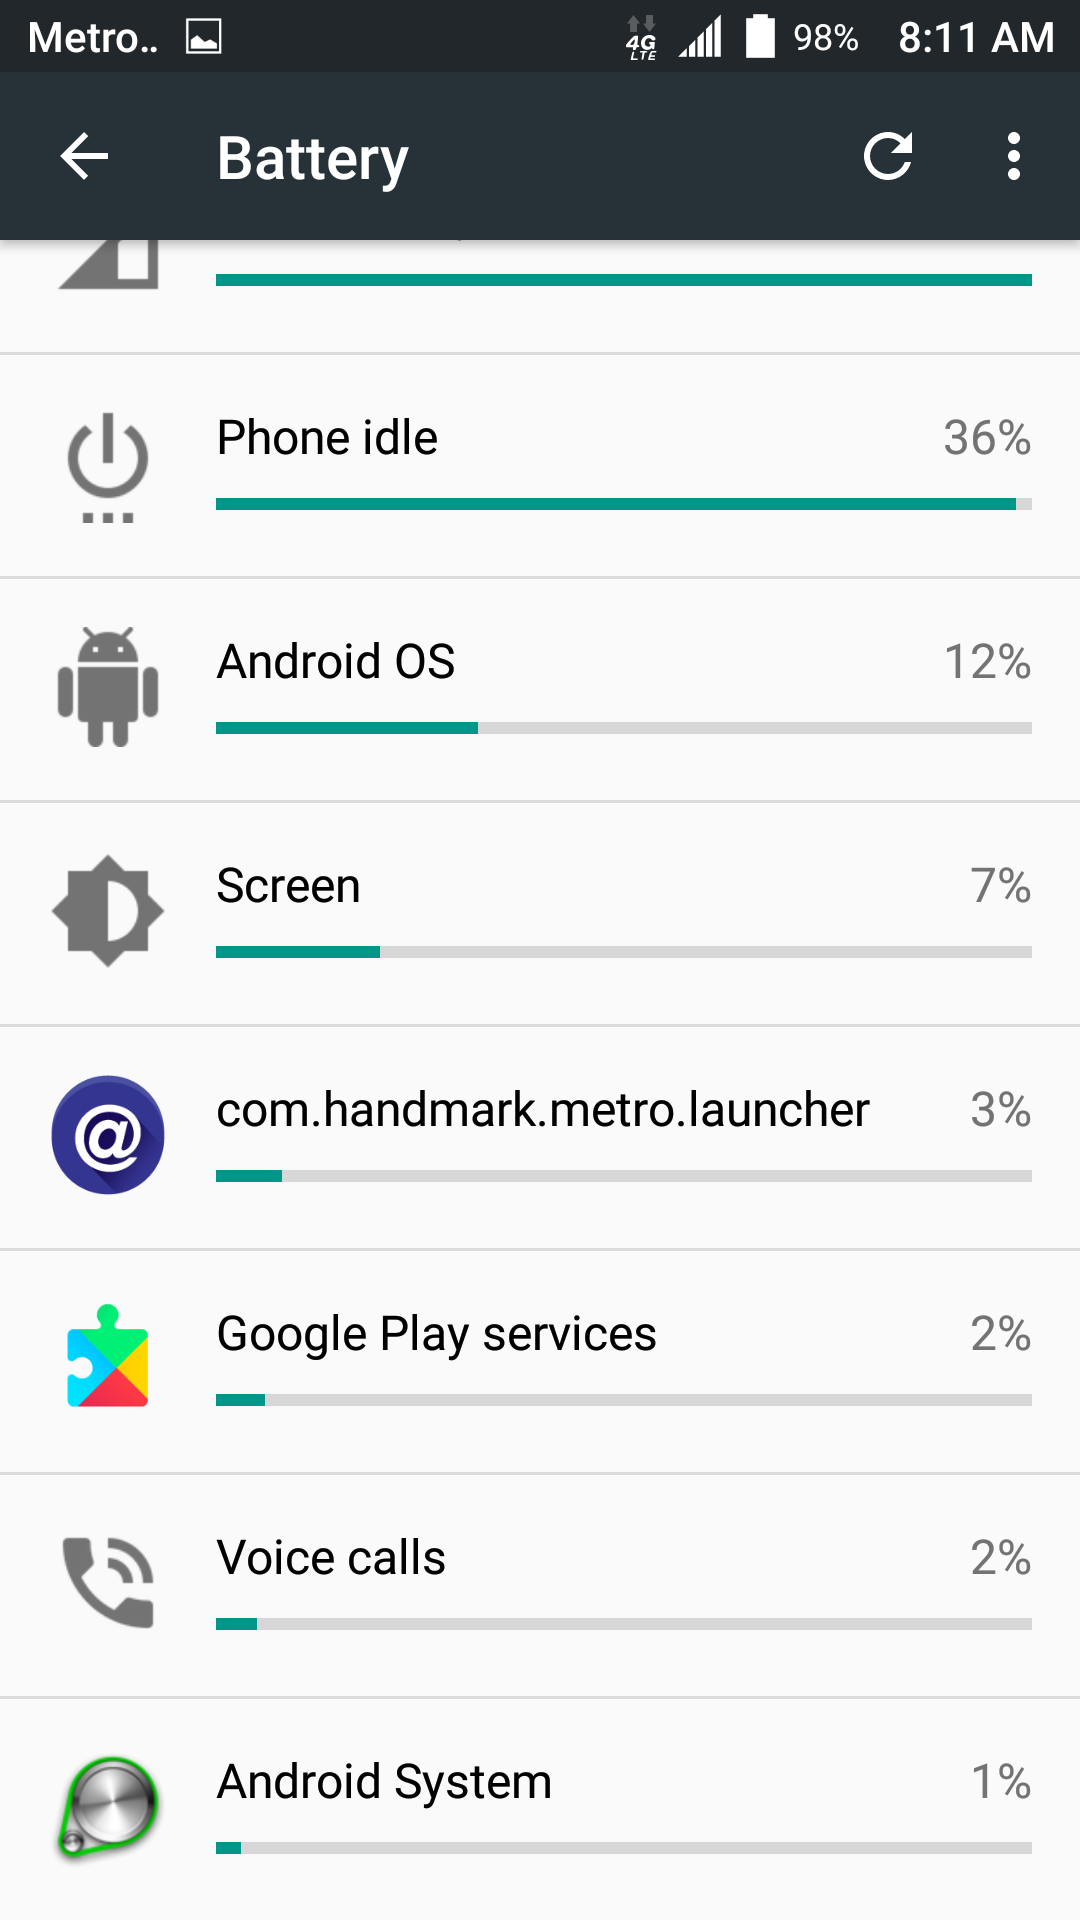 Help! My battery is discharging faster and faster   it's been only a